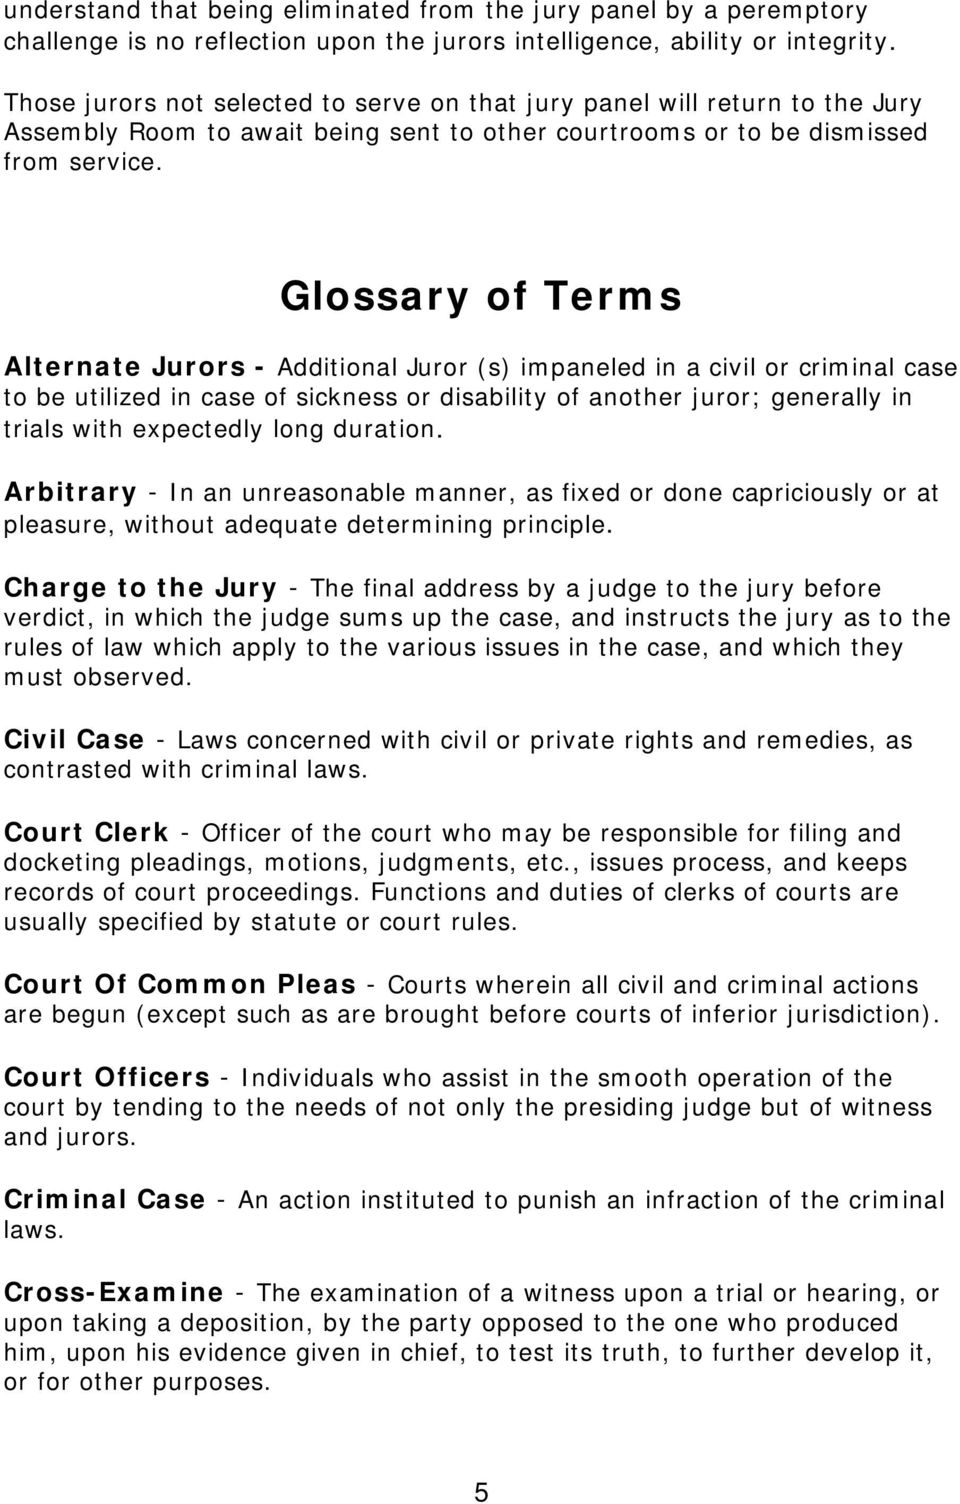 Glossary of Terms Alternate Jurors - Additional Juror (s) impaneled in a civil or criminal case to be utilized in case of sickness or disability of another juror; generally in trials with expectedly